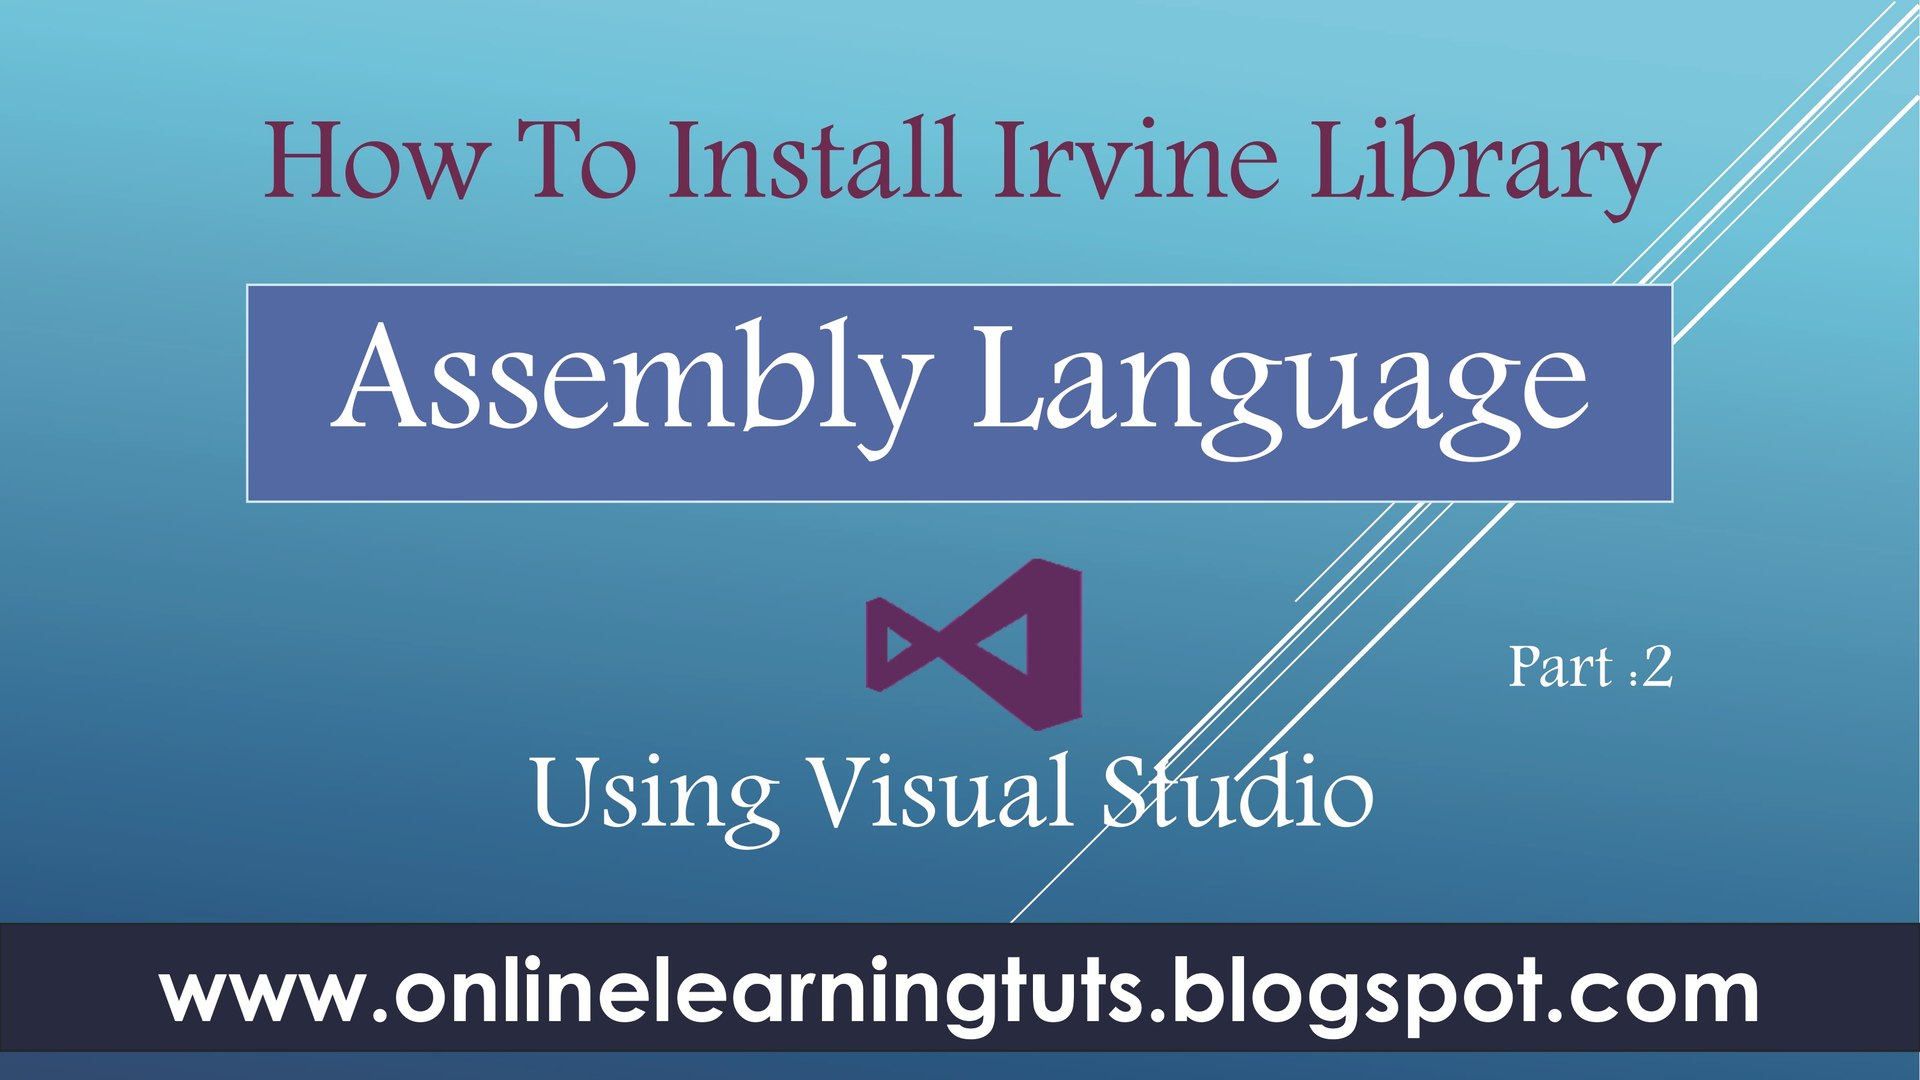 How to Install Irvine Library in visual Studio